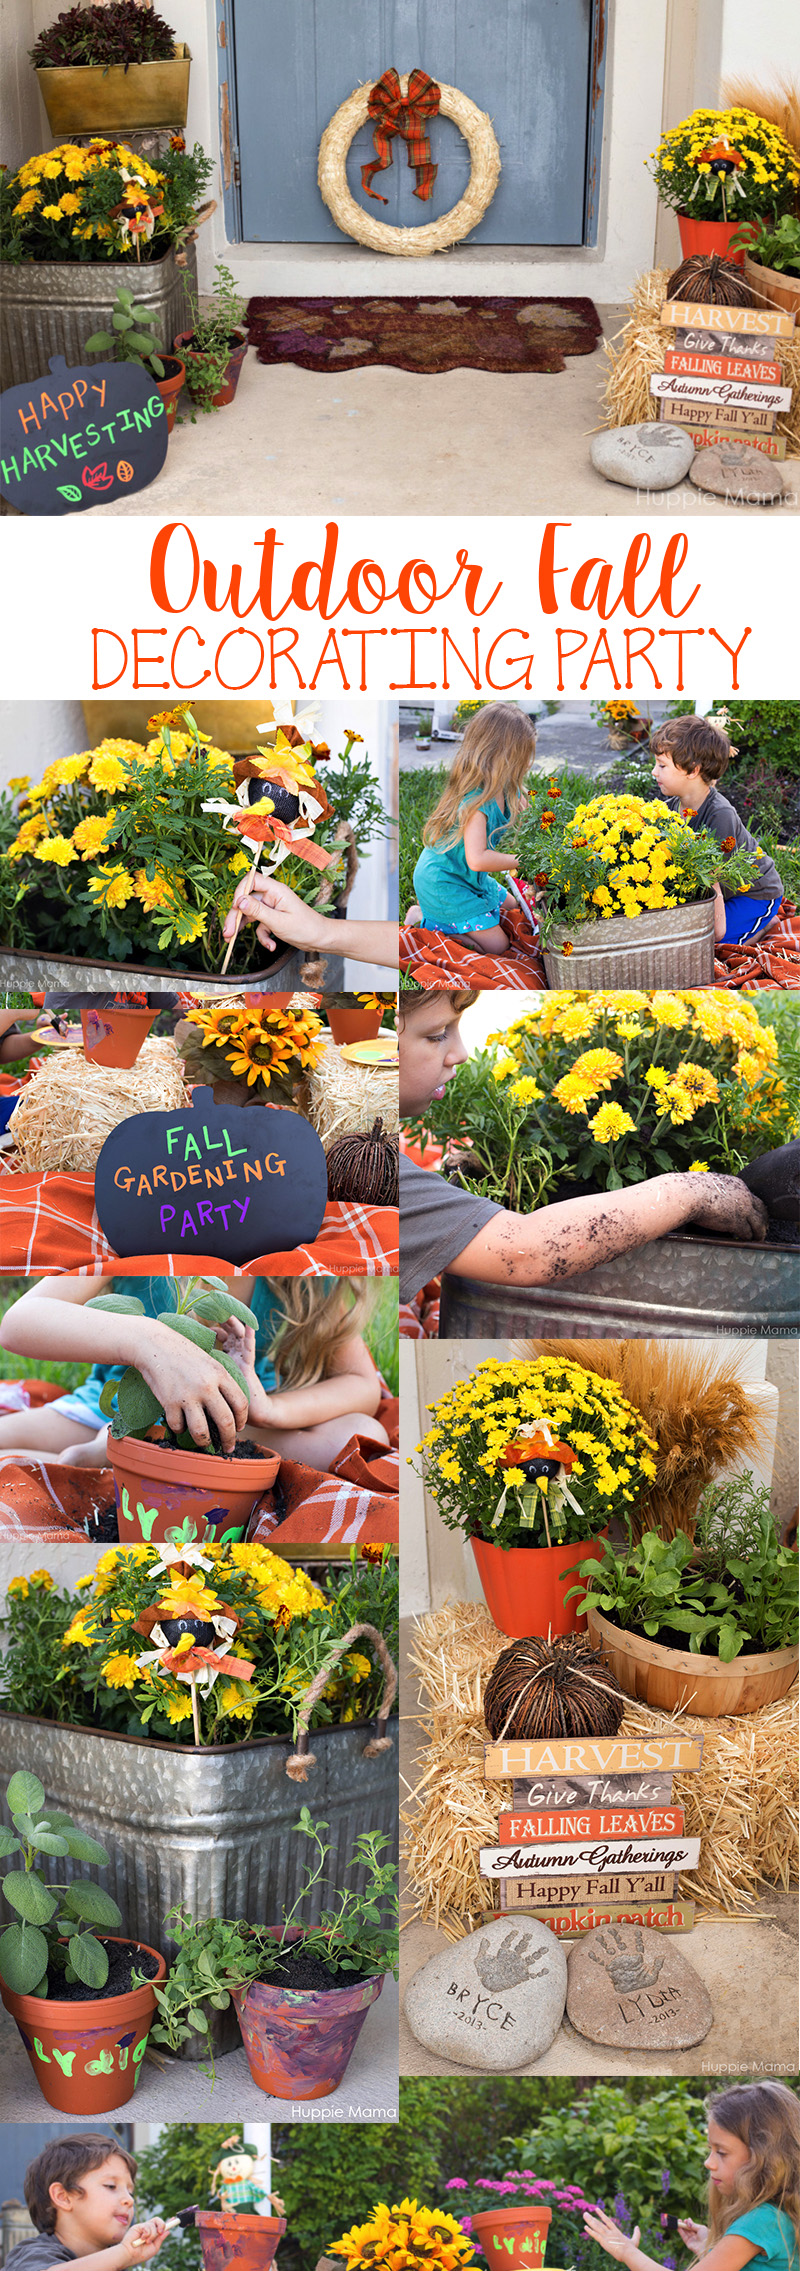 Outdoor Fall Decorating Party ideas